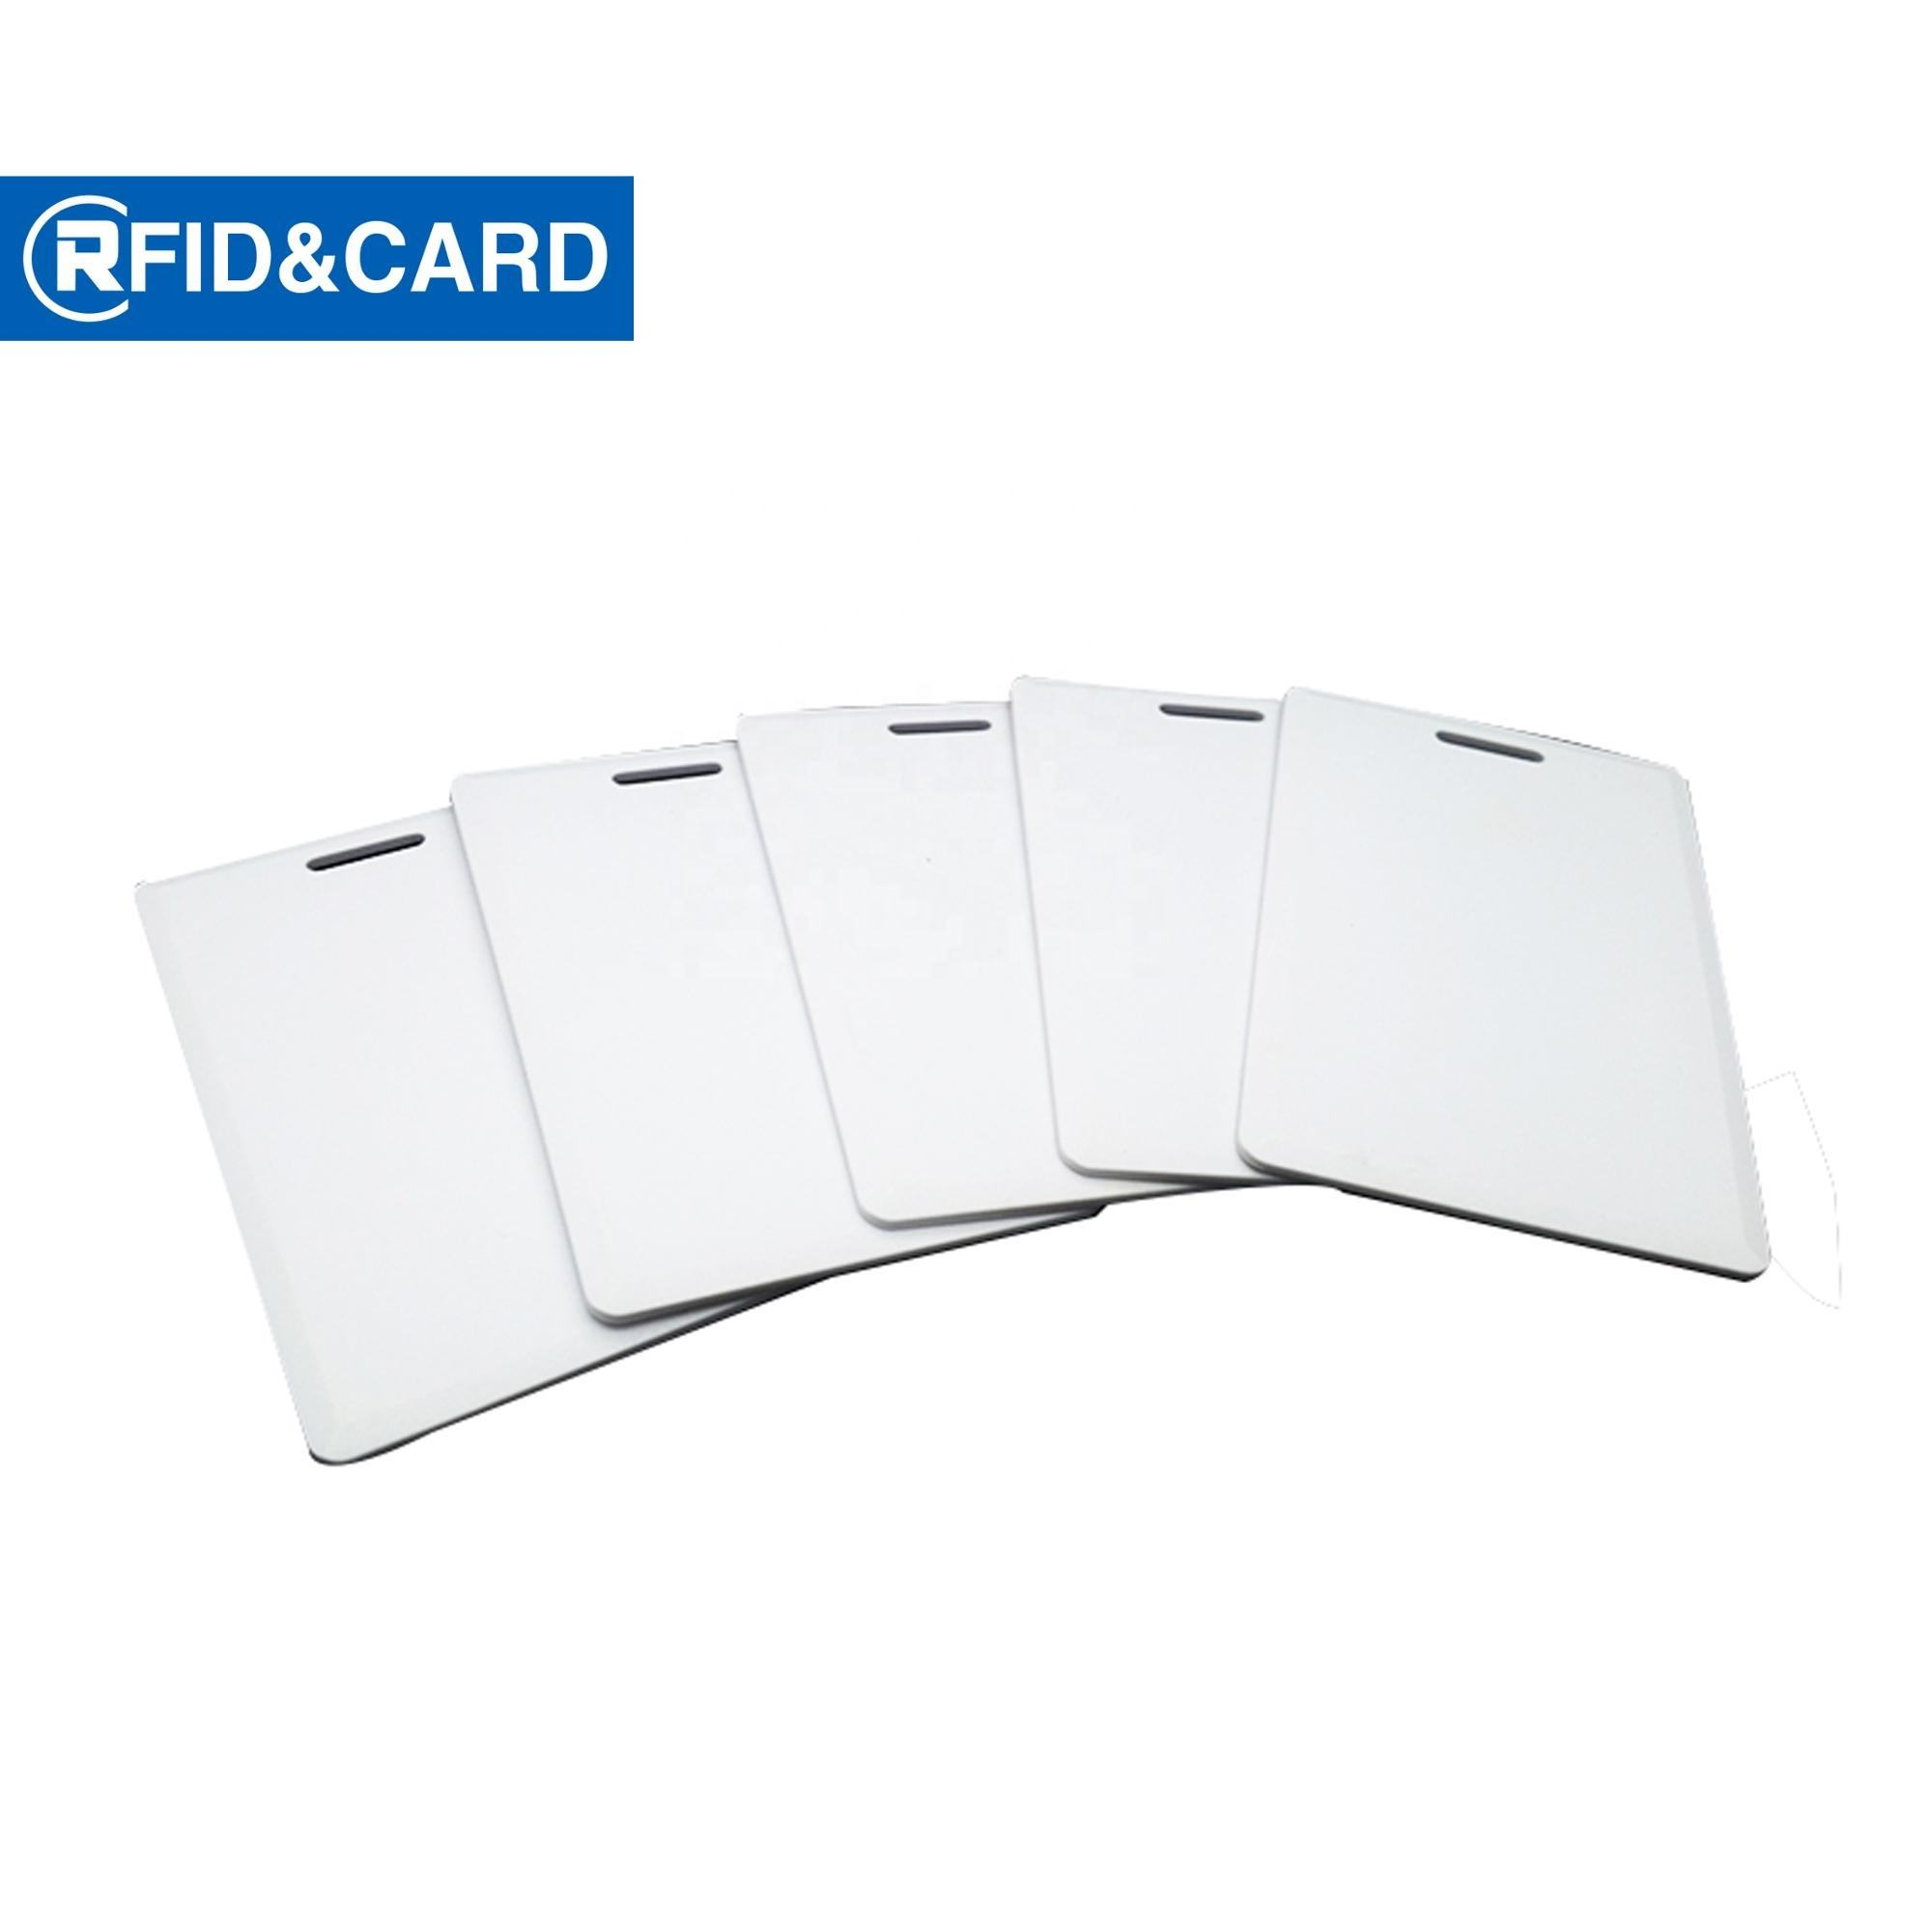 Access control 13.56 백만헤르쯔 PVC smart <span class=keywords><strong>MIFARE</strong></span> Classic 1 천개/4 천개 RFID card